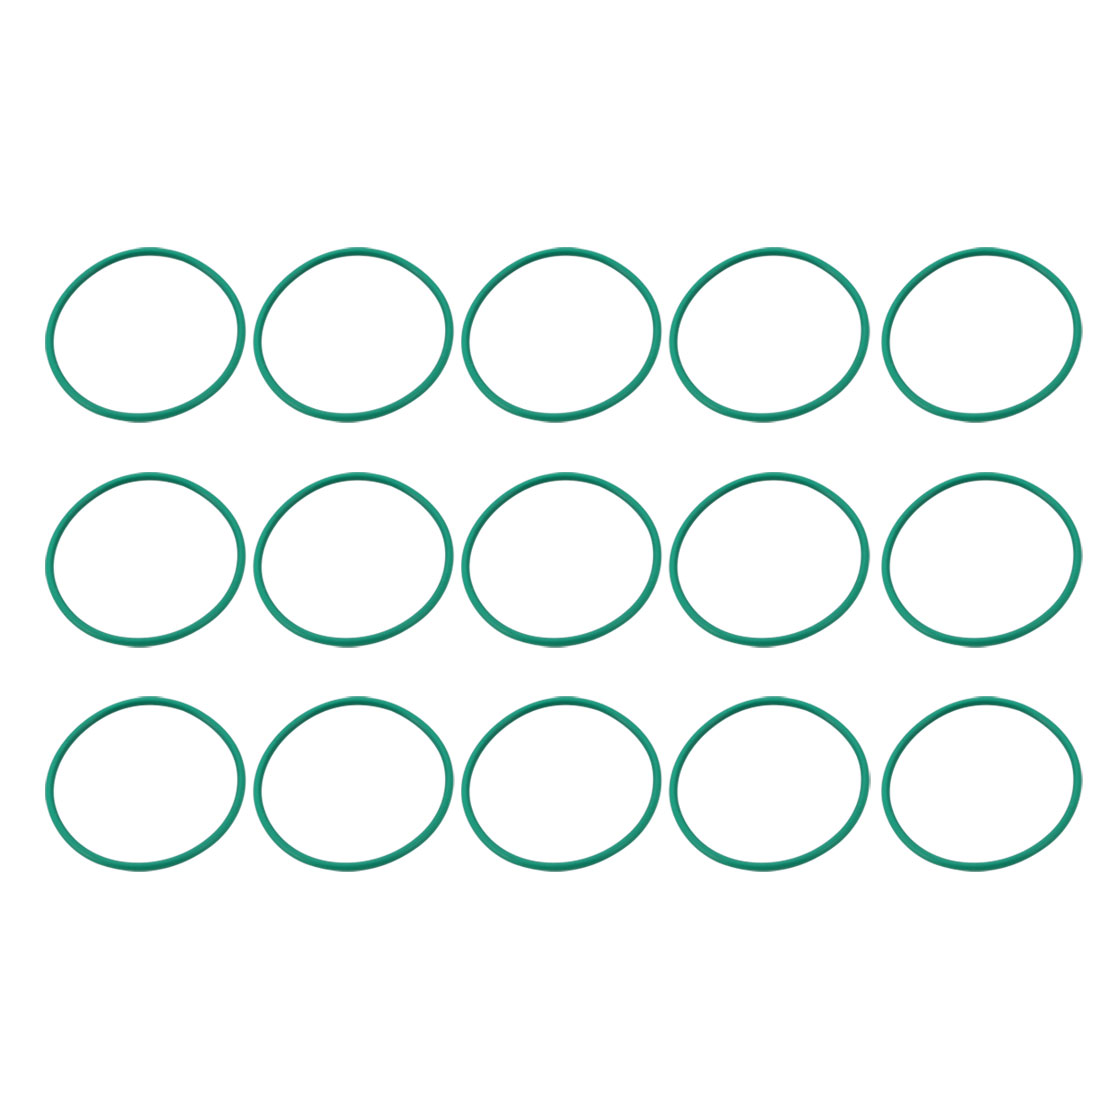 15 Pcs Green 35mm Outer Dia 1.5mm Thickness Sealing Ring O-shape Rubber Grommet - image 2 of 2